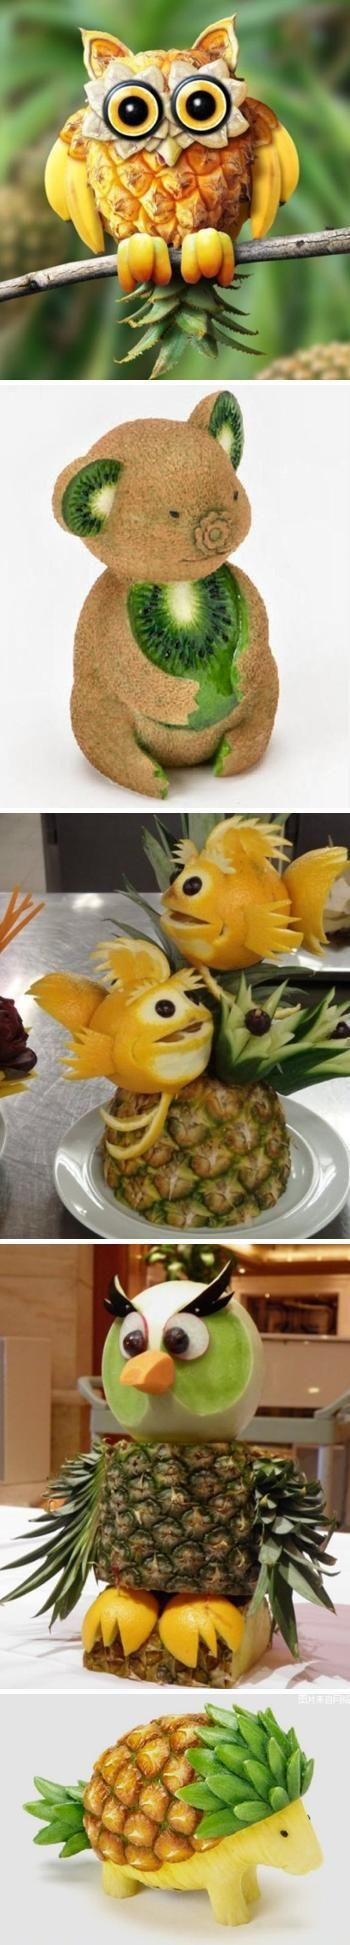 Lifelike-creative-fruit-animal-sculptures.jpg 350 ×1.945 pixel